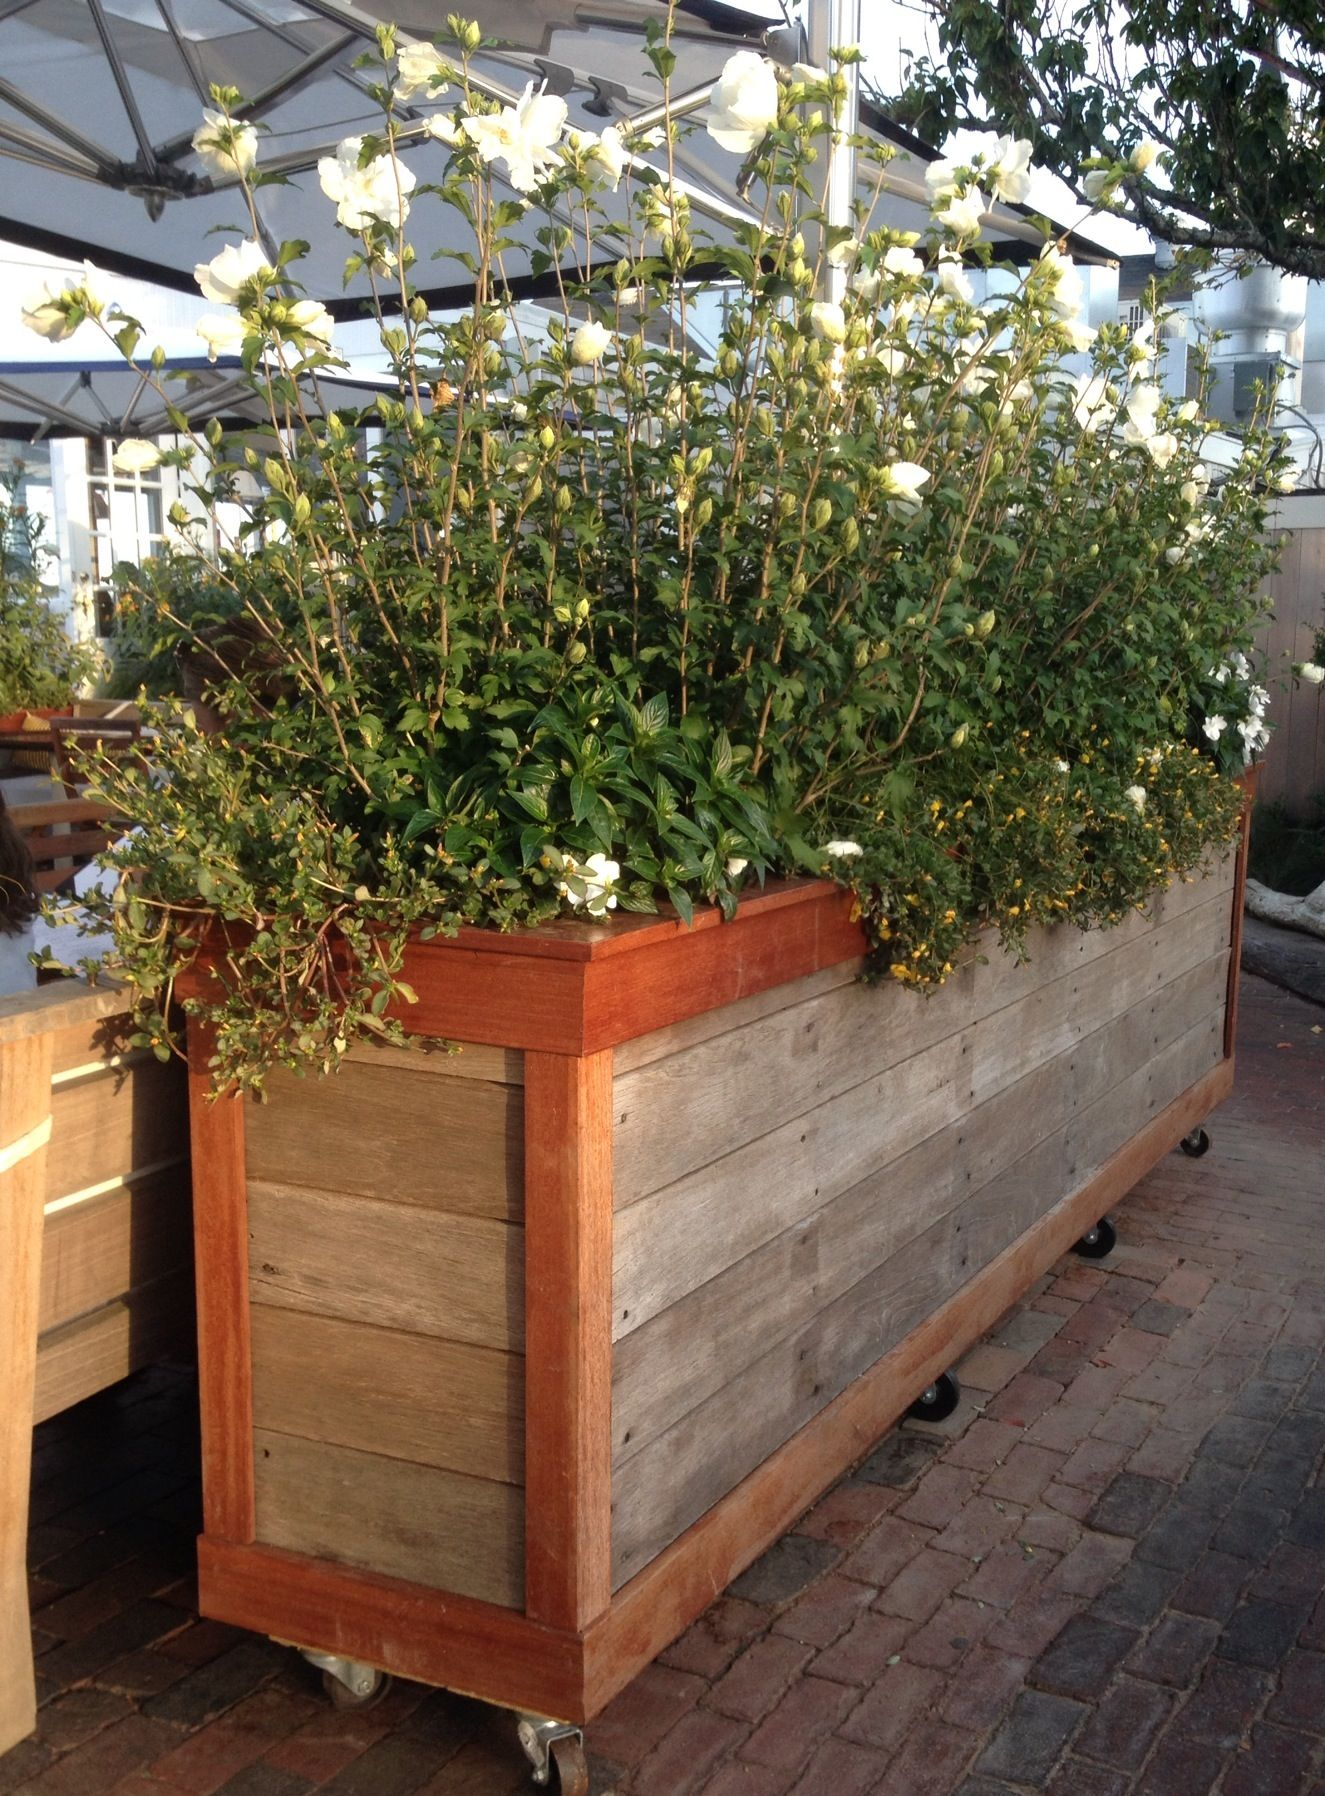 Moveable Large Privacy Planter Perfect For Screening On Balconies